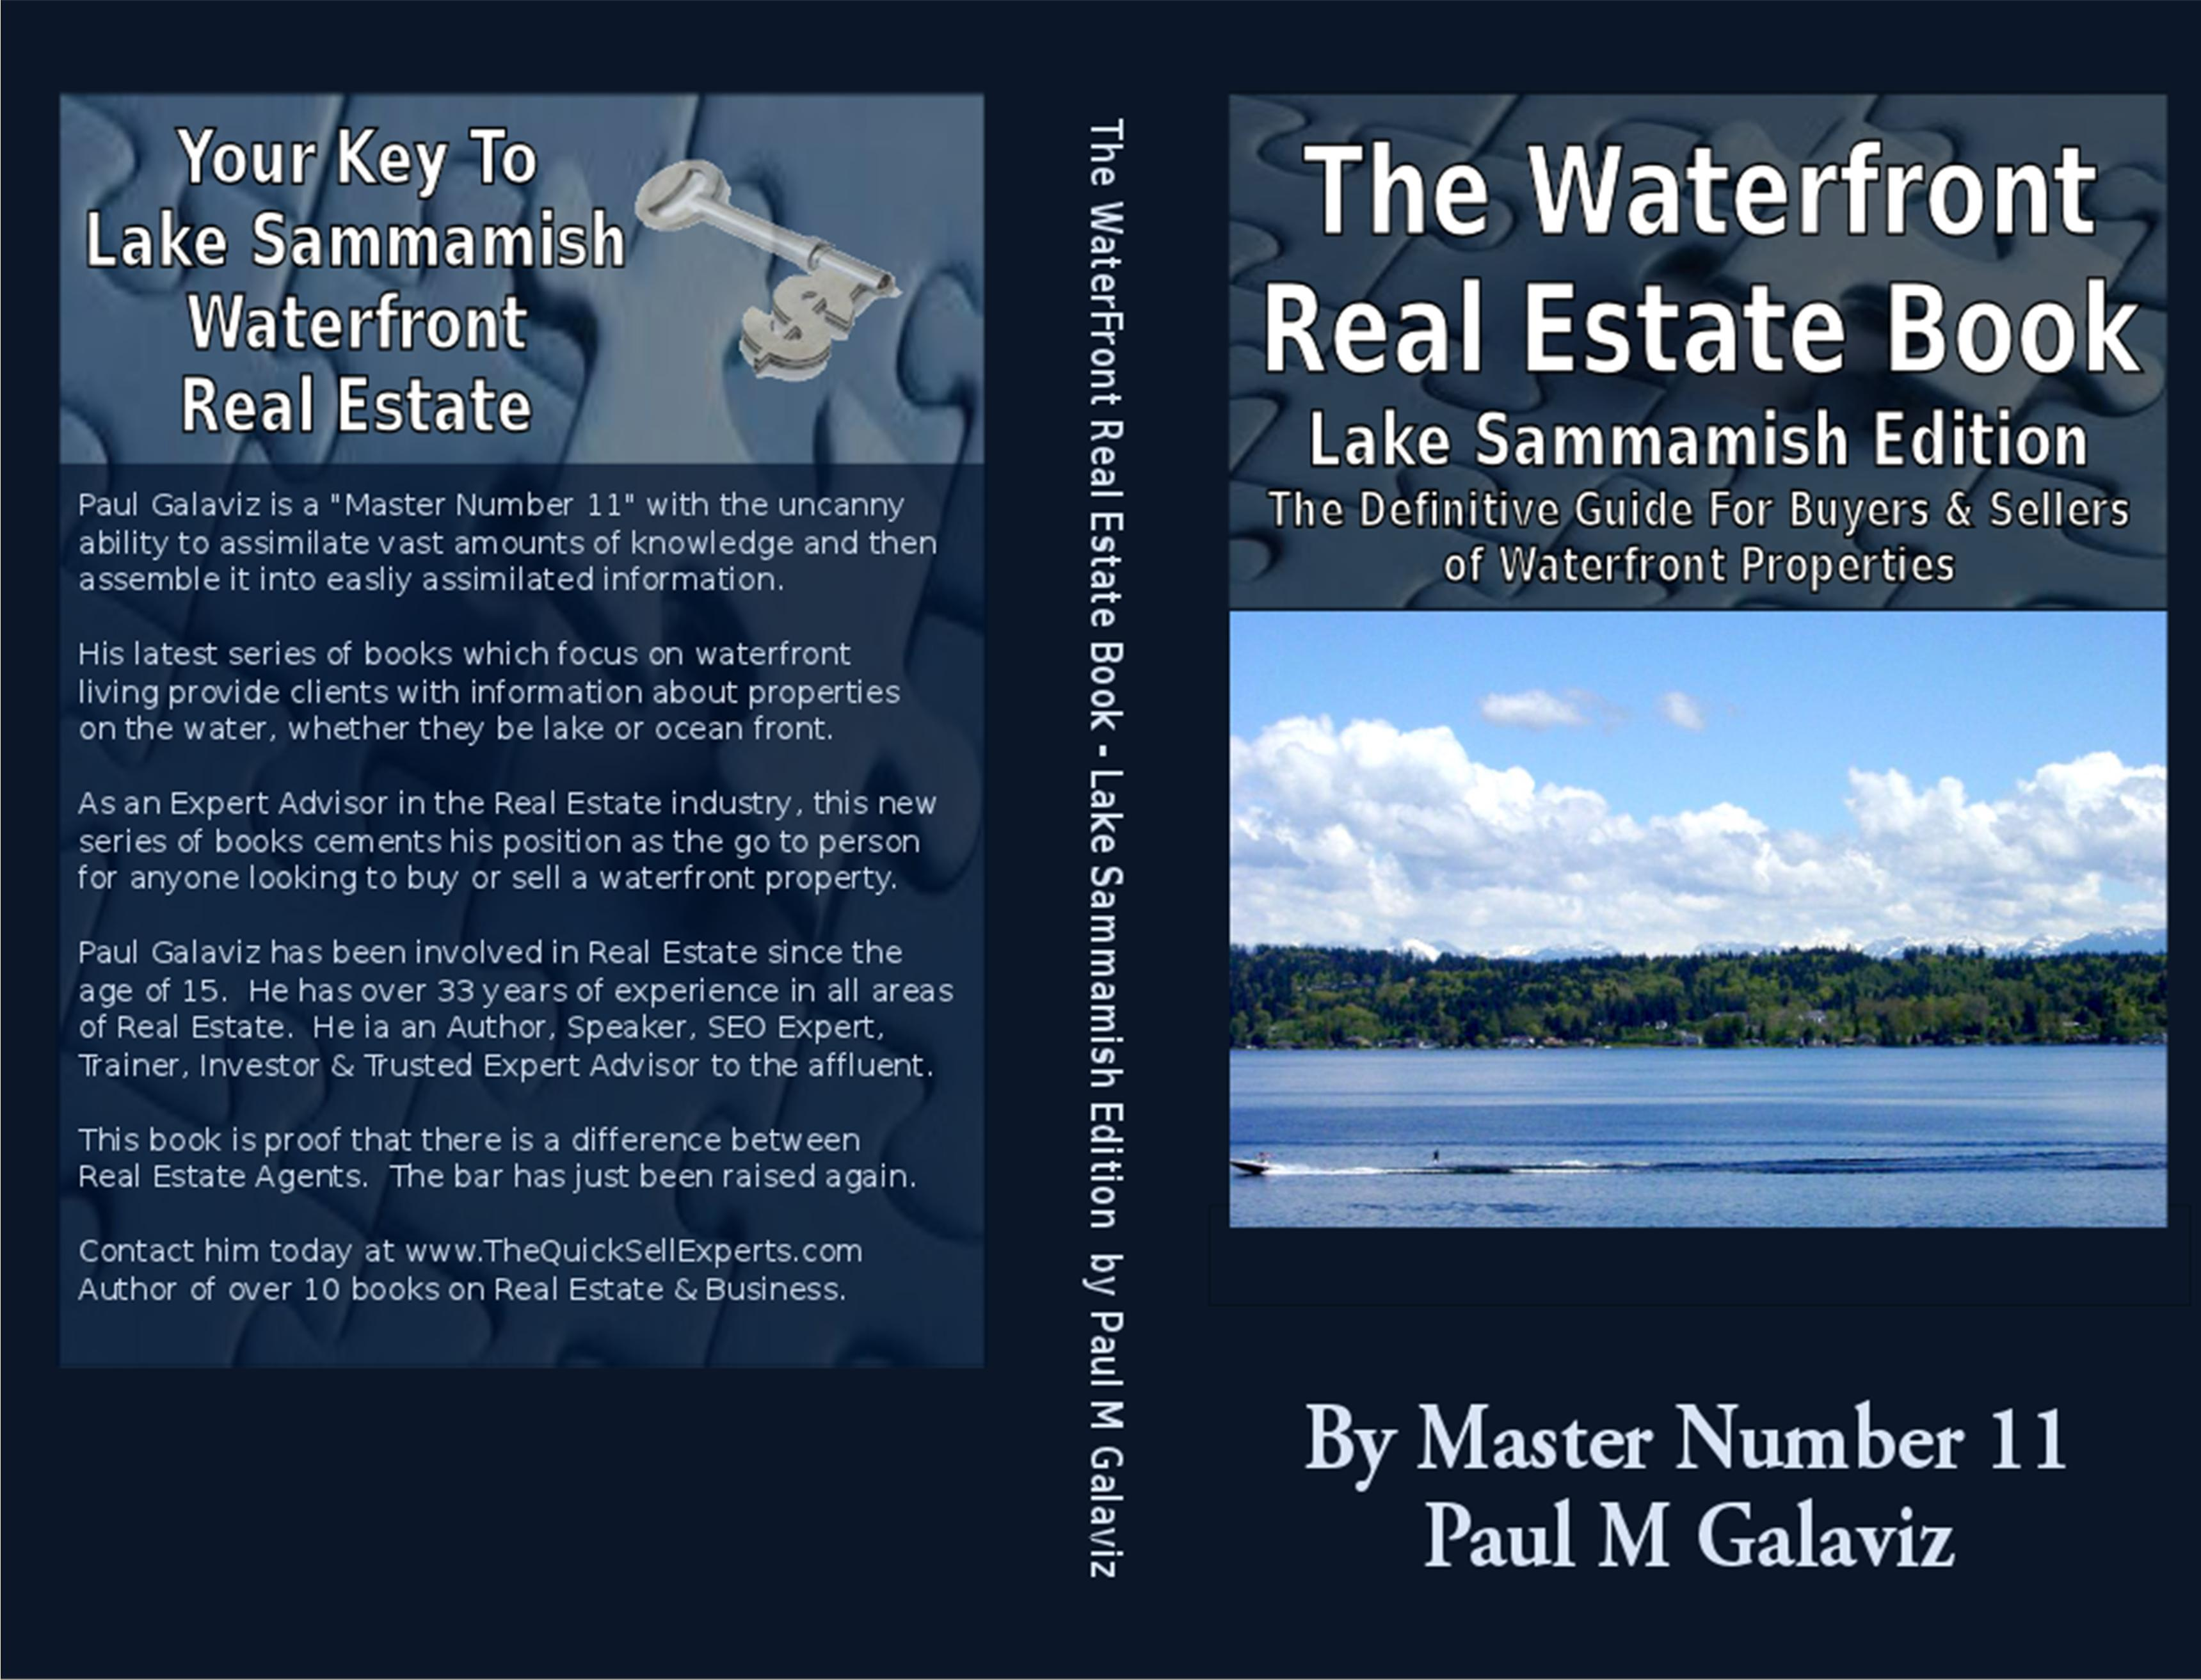 The Waterfront Real Estate Book-Lake Sammamish Edition cover image